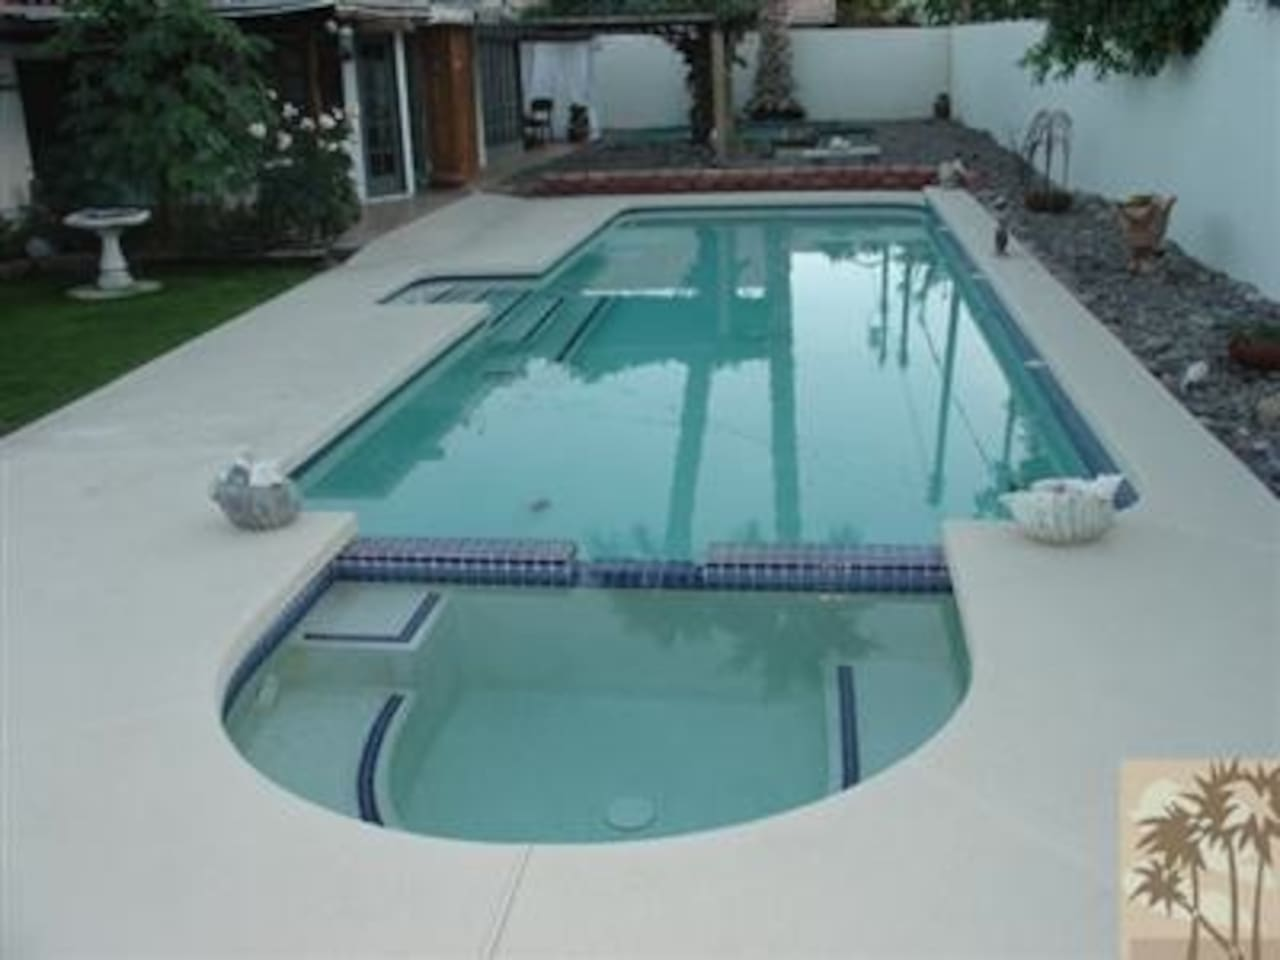 Lap Pool (not heated) Spa (can be heated) Please let us know when you would like the spa heated.